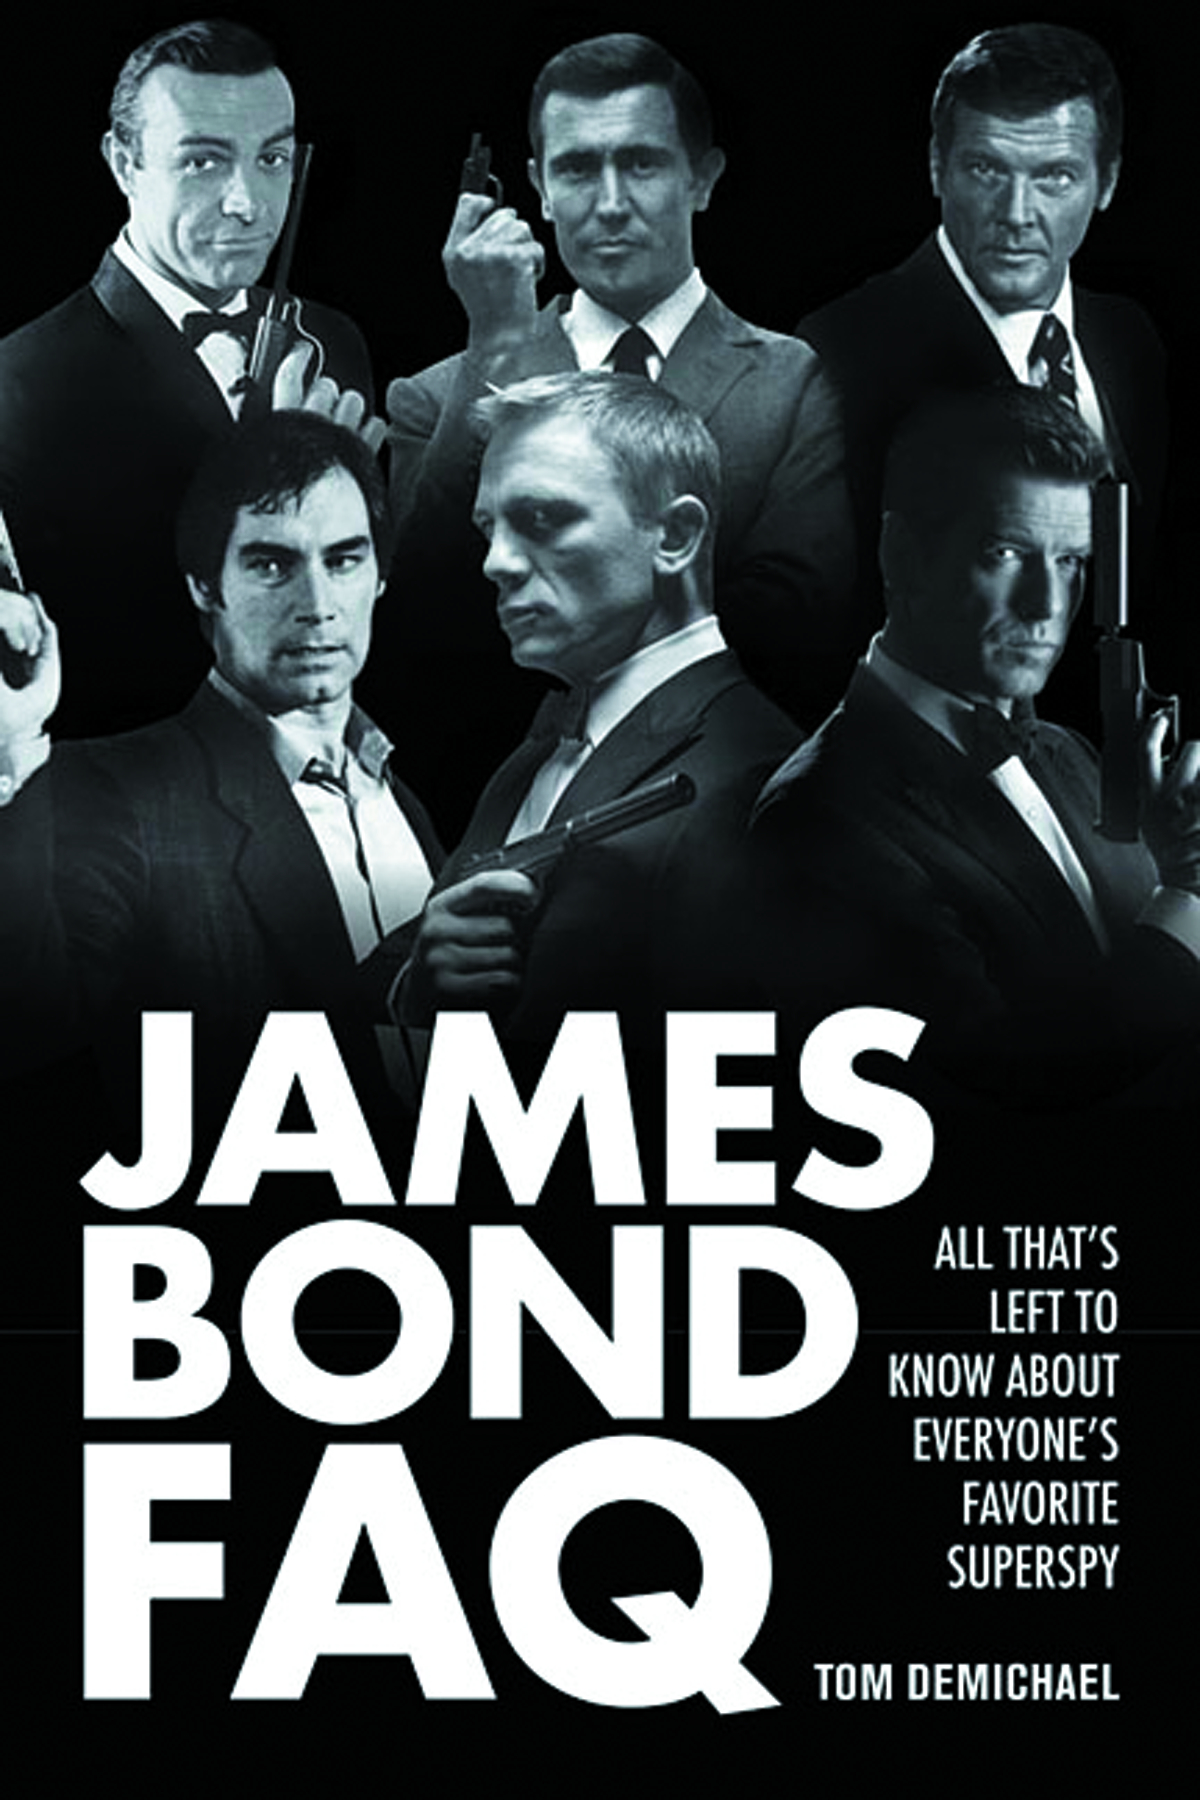 JAMES BOND FAQ ALL THATS LEFT TO KNOW